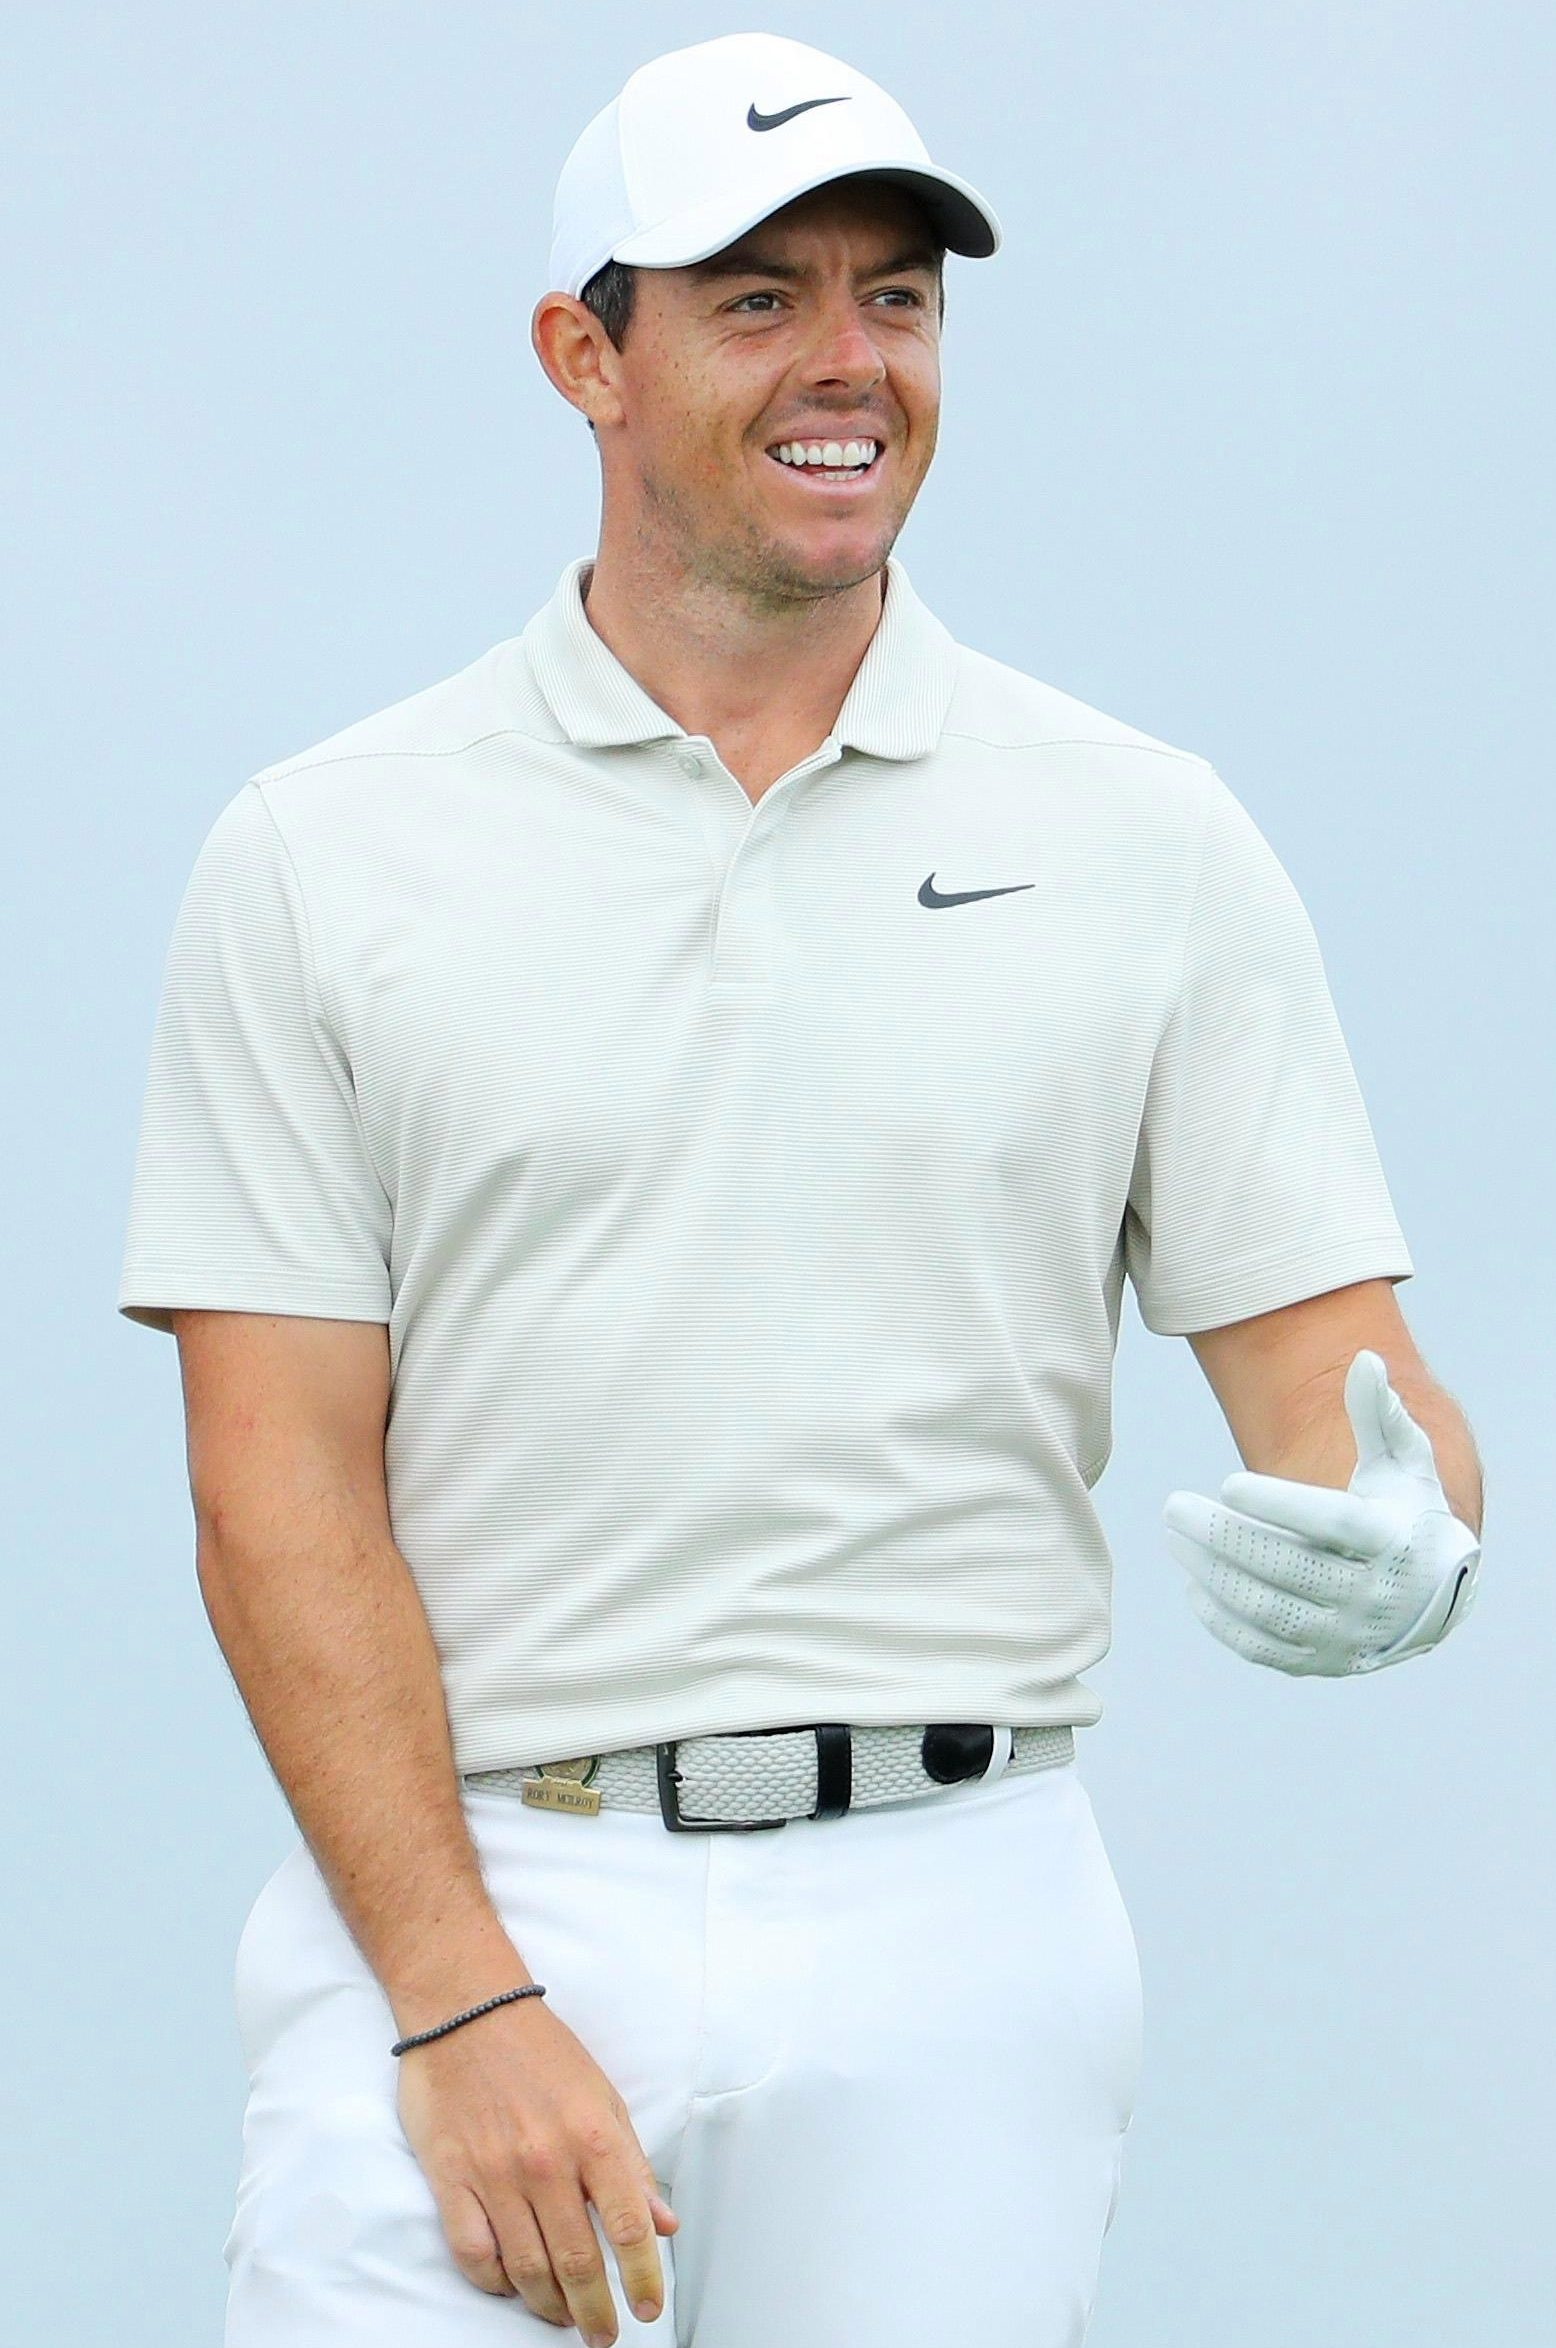 Rory McIlroy is desperate to end his Major drought but admits it is unlikely anytime soon